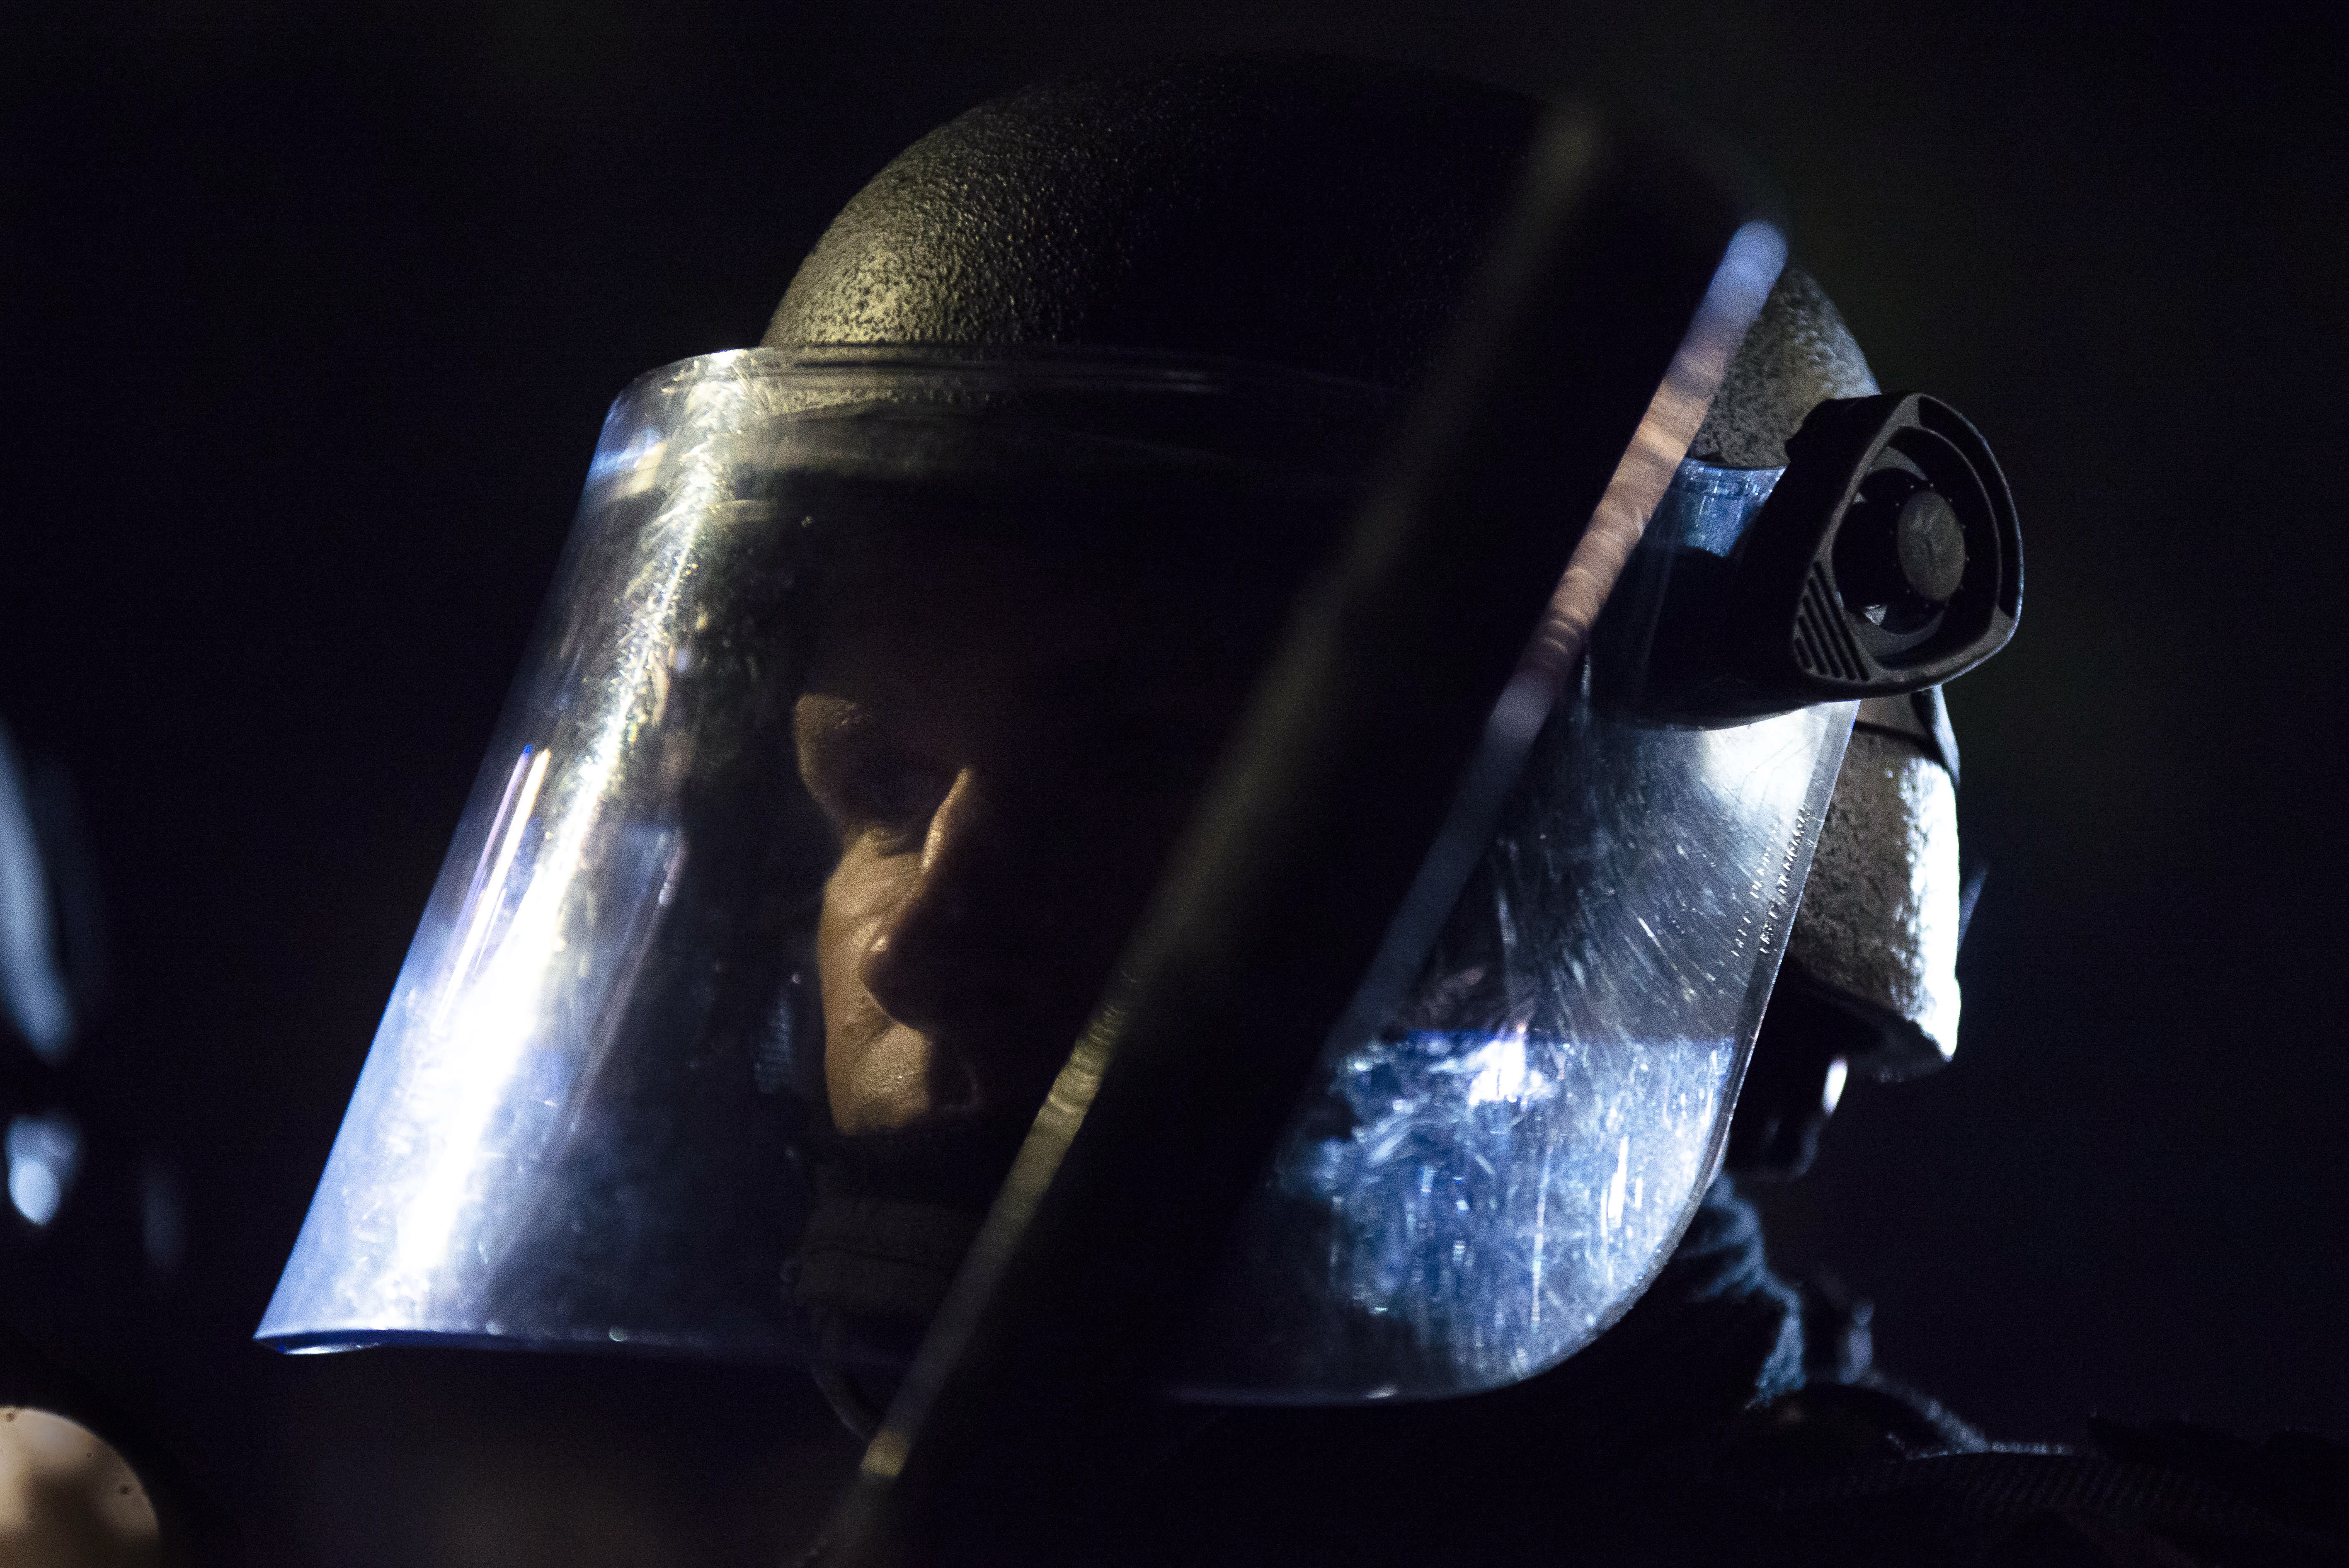 A Portland police officer watches a crowd of protesters at the Laurelhurst neighborhood early in the morning on Saturday, Aug. 8, 2020 in Portland, Ore. (AP Photo/Nathan Howard)